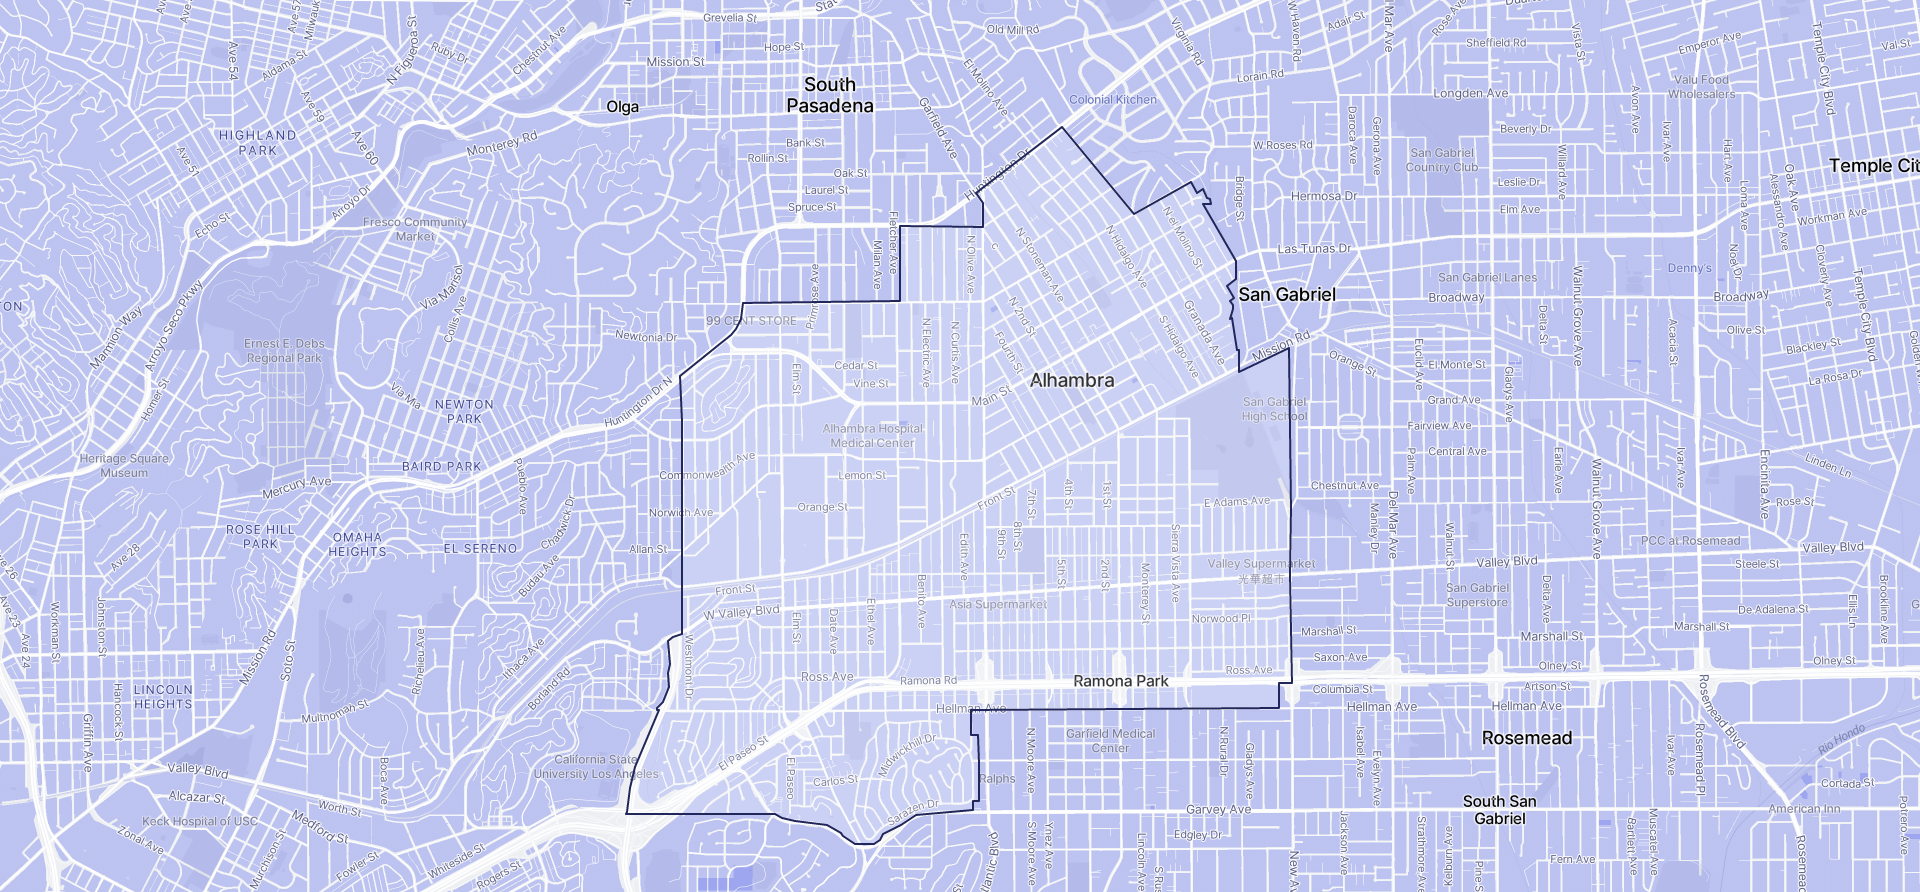 Image of Alhambra boundaries on a map.